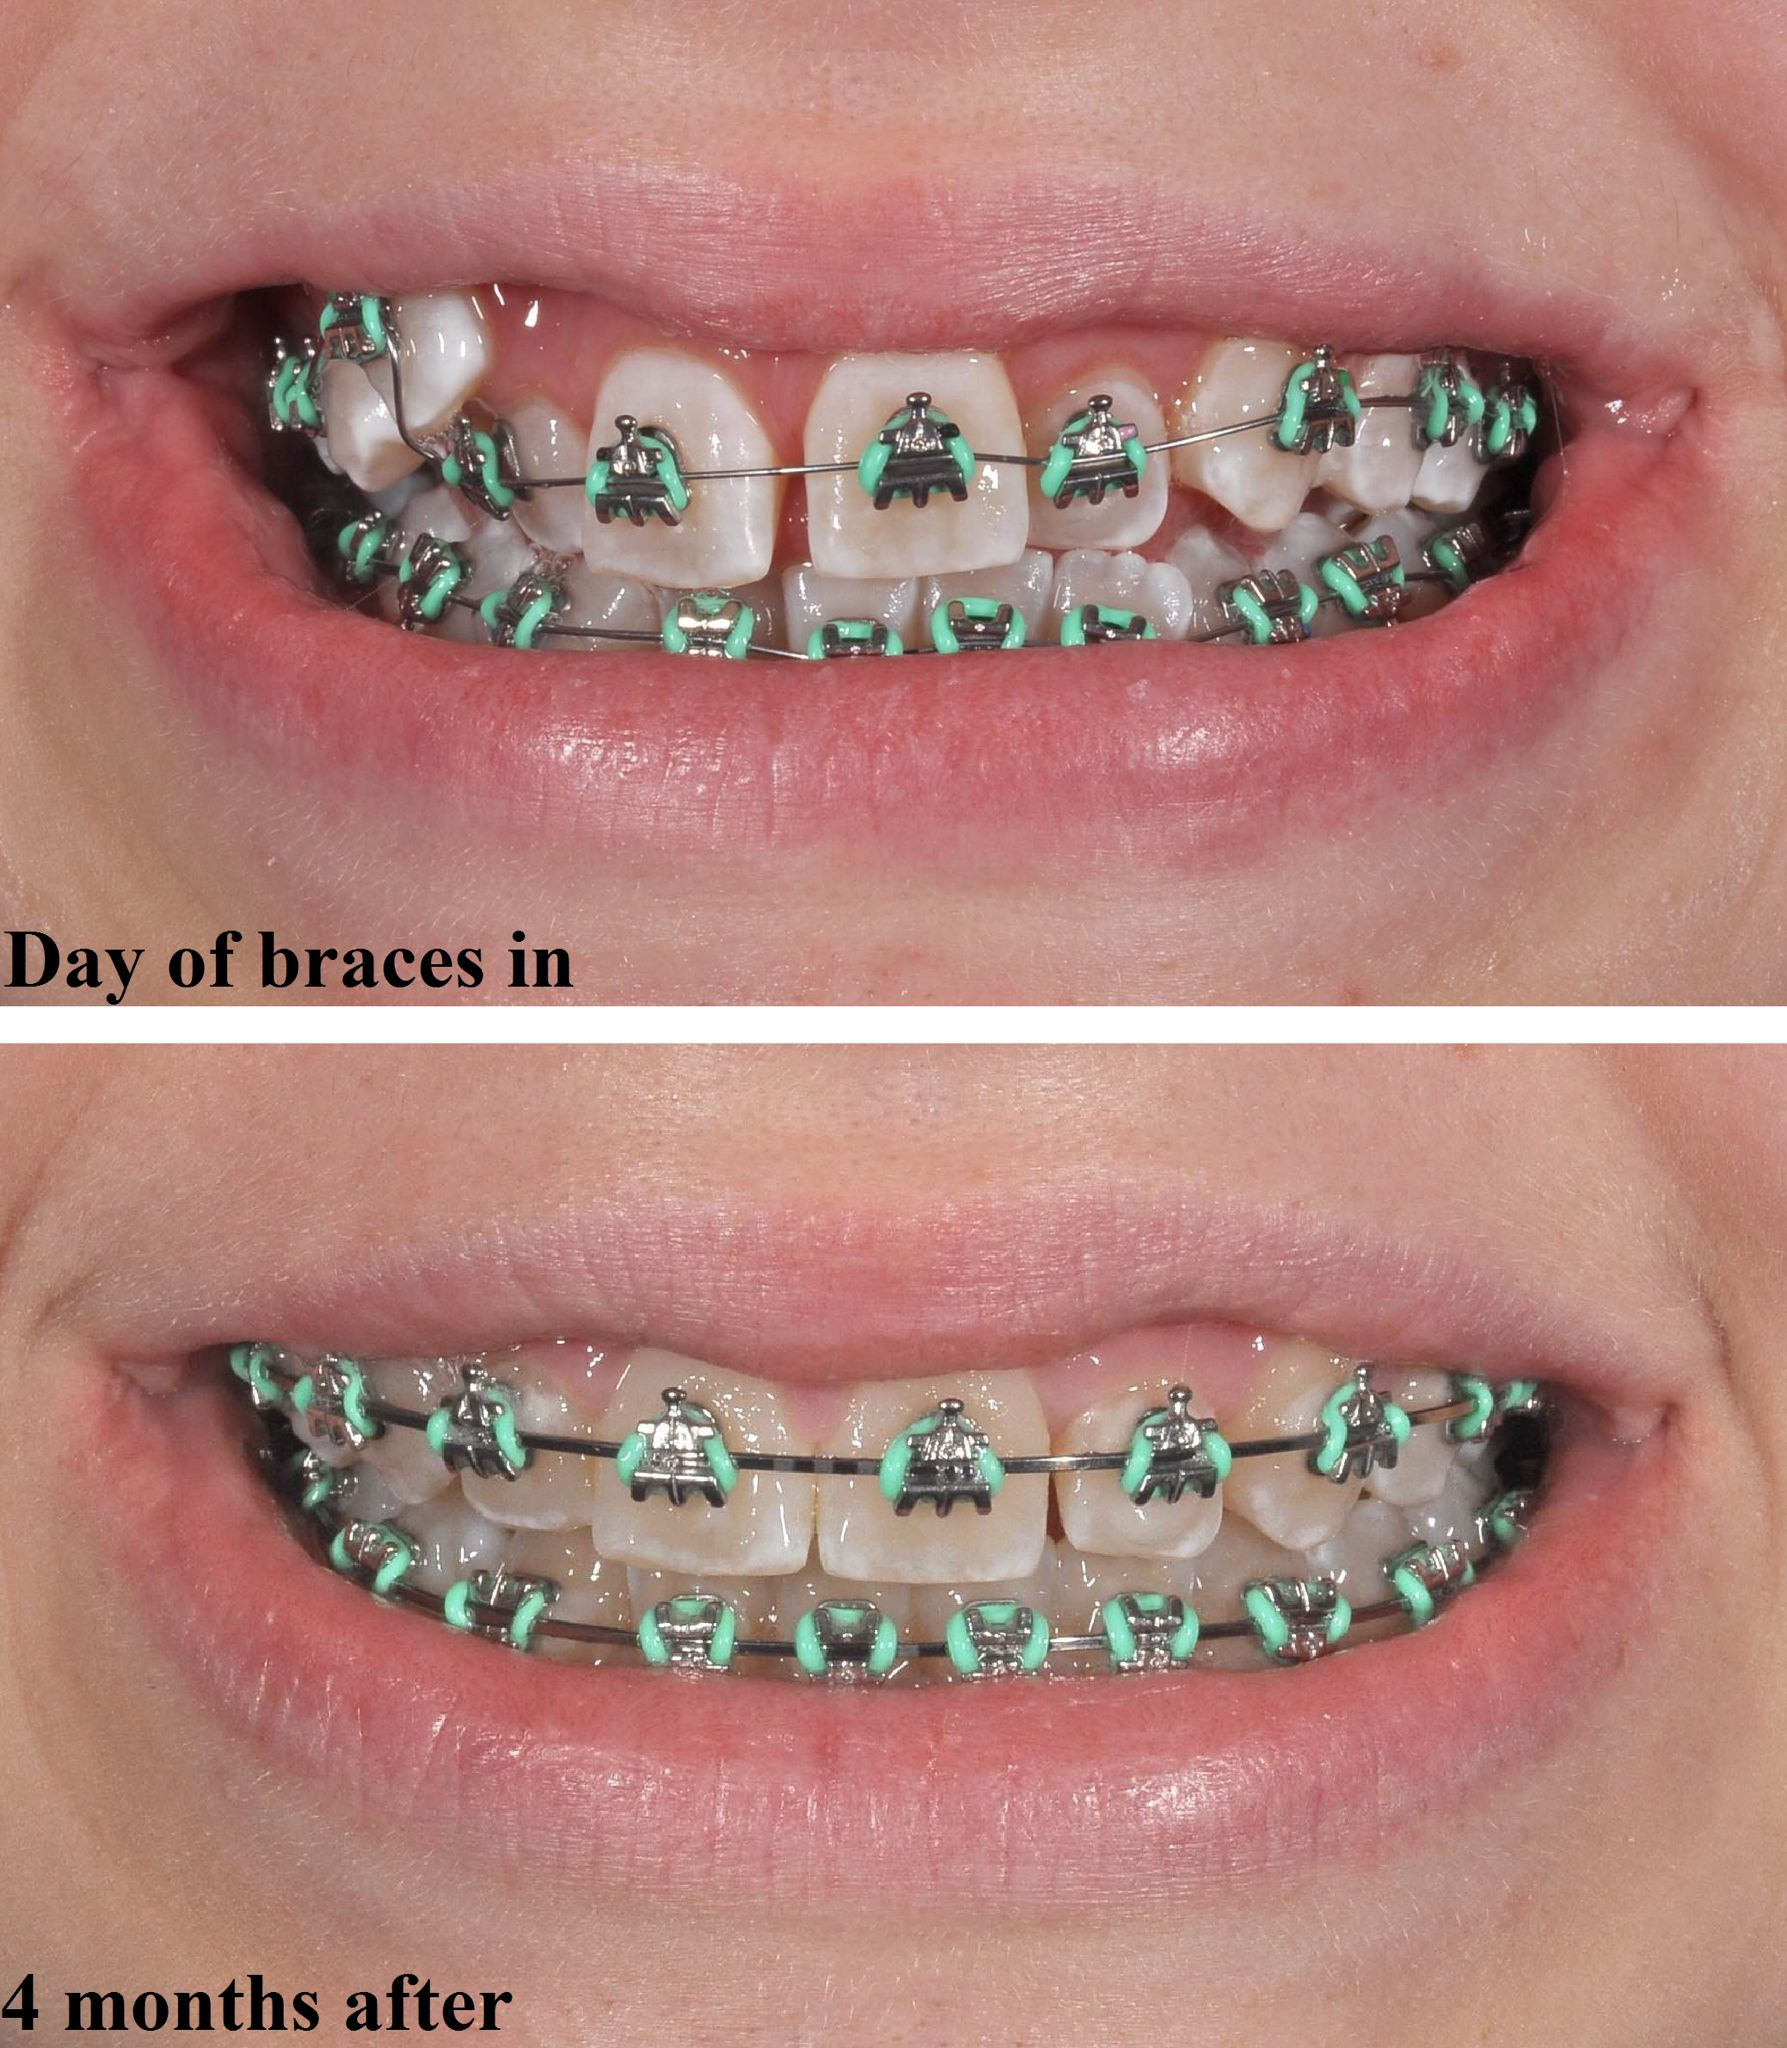 Braces Off Quotes A Great Progress Shot Taken At Drle's Patients 4 Month Braces